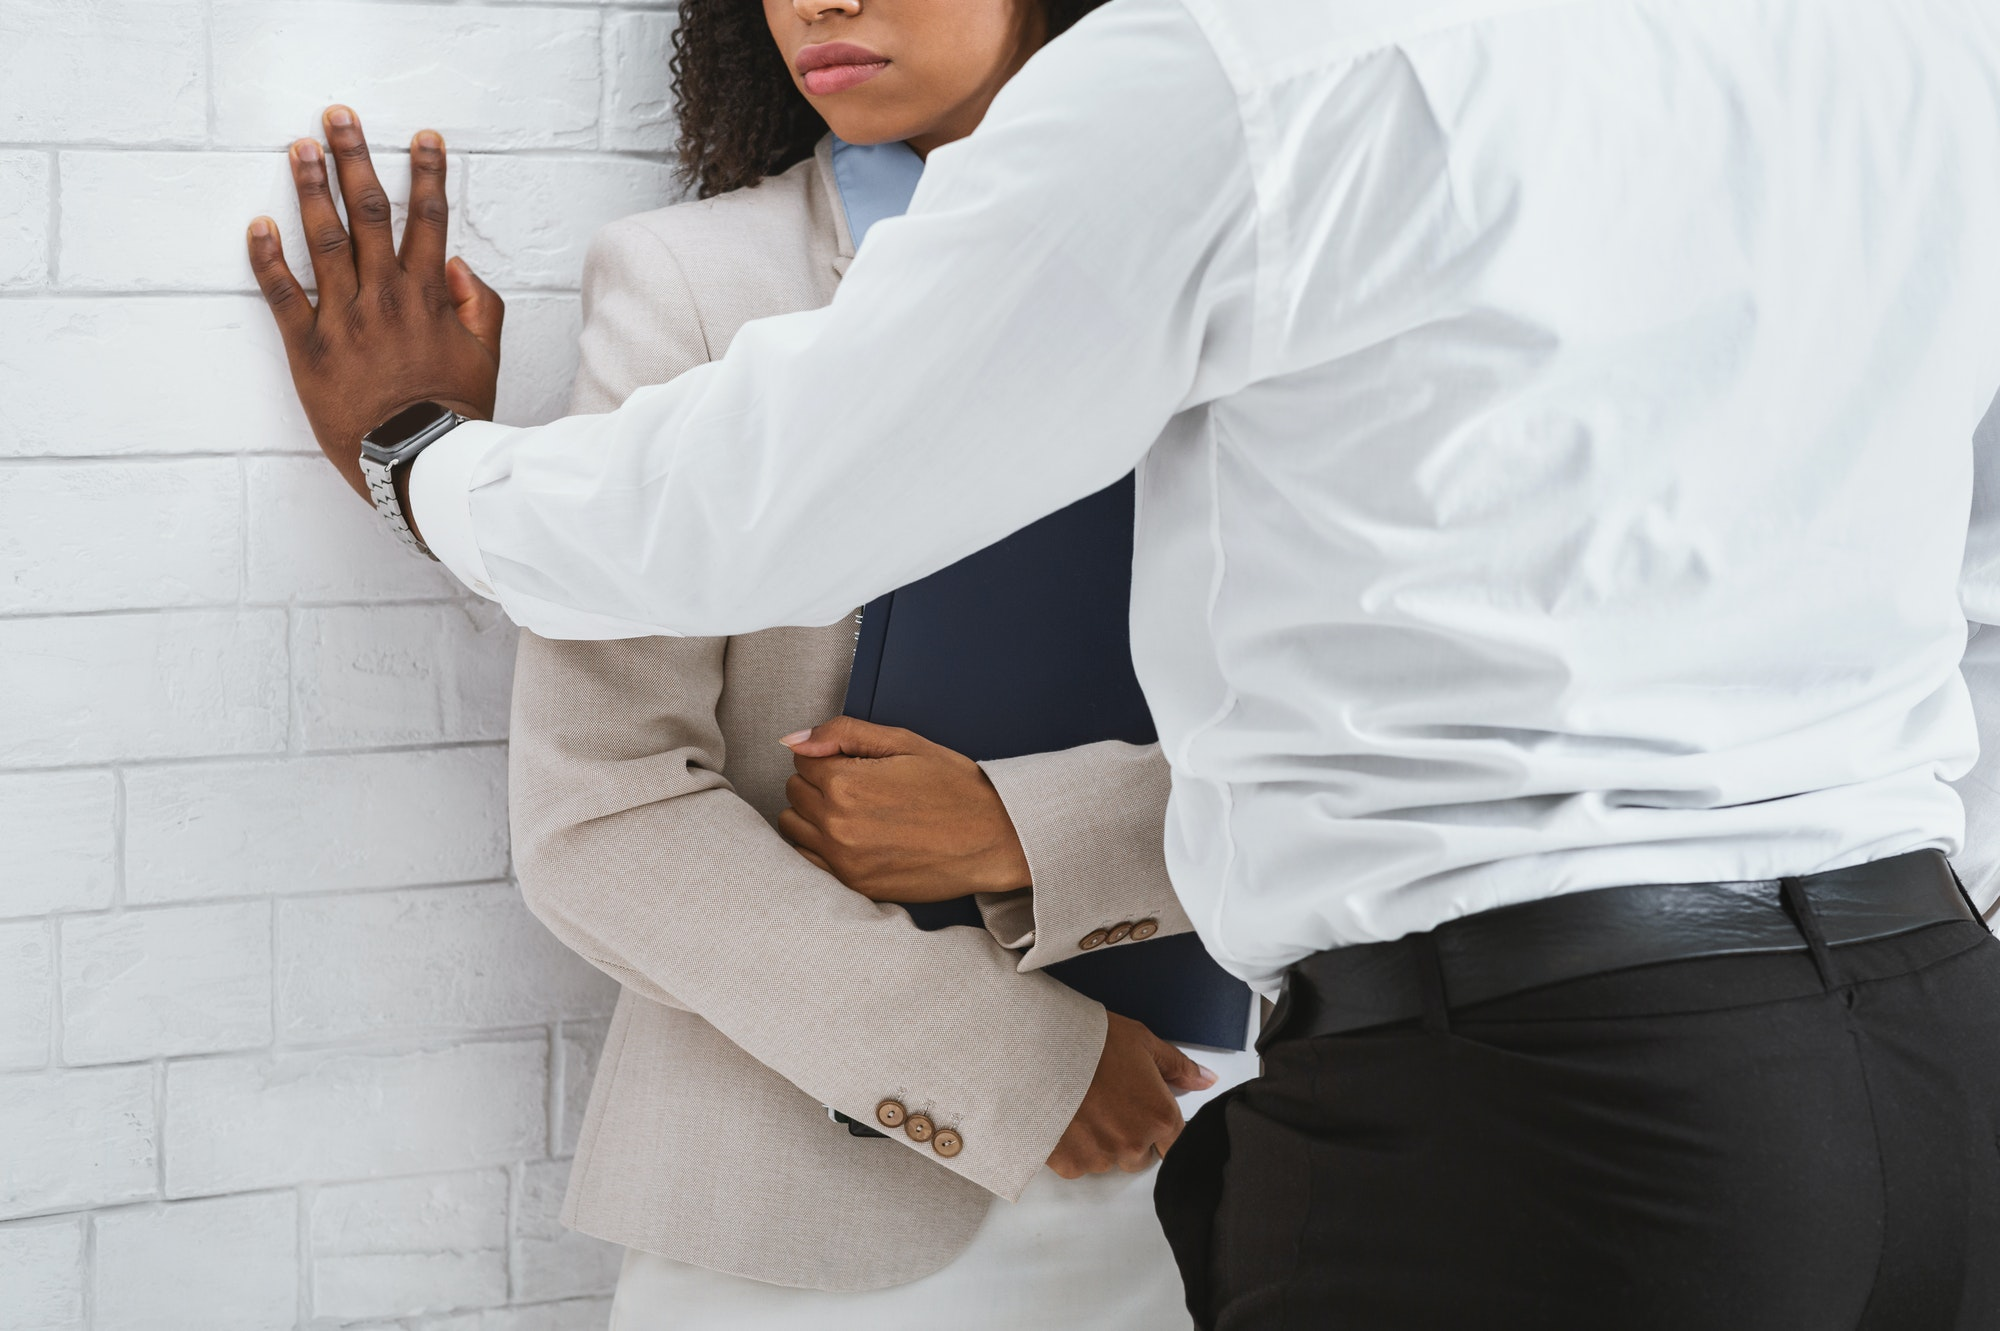 Workplace harassment. Closeup view of black guy making unwelcome sexual advances to his secretary in